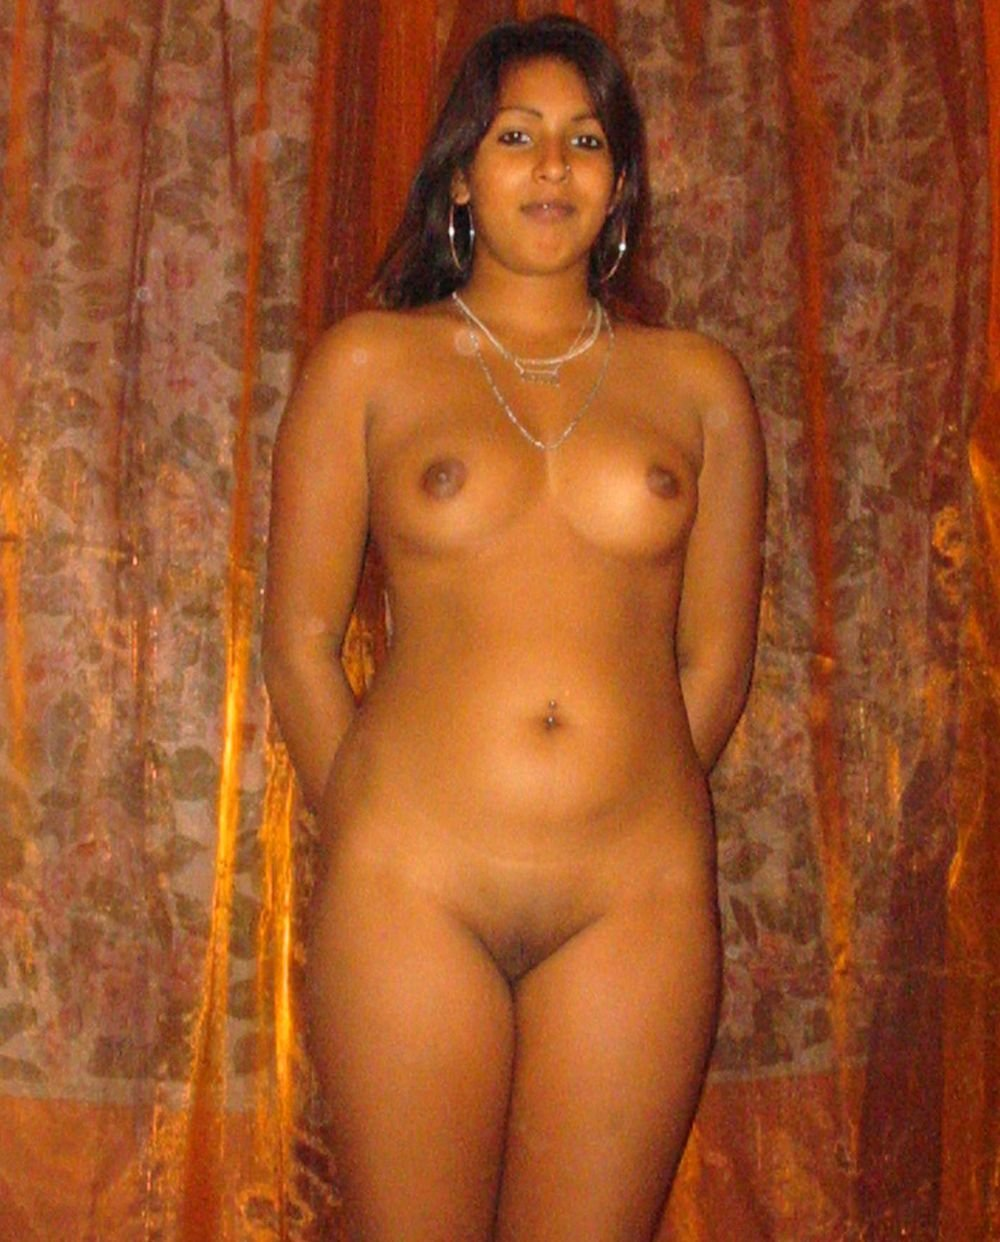 Real indian rez girls naked, divya dutt pussy sex photoes